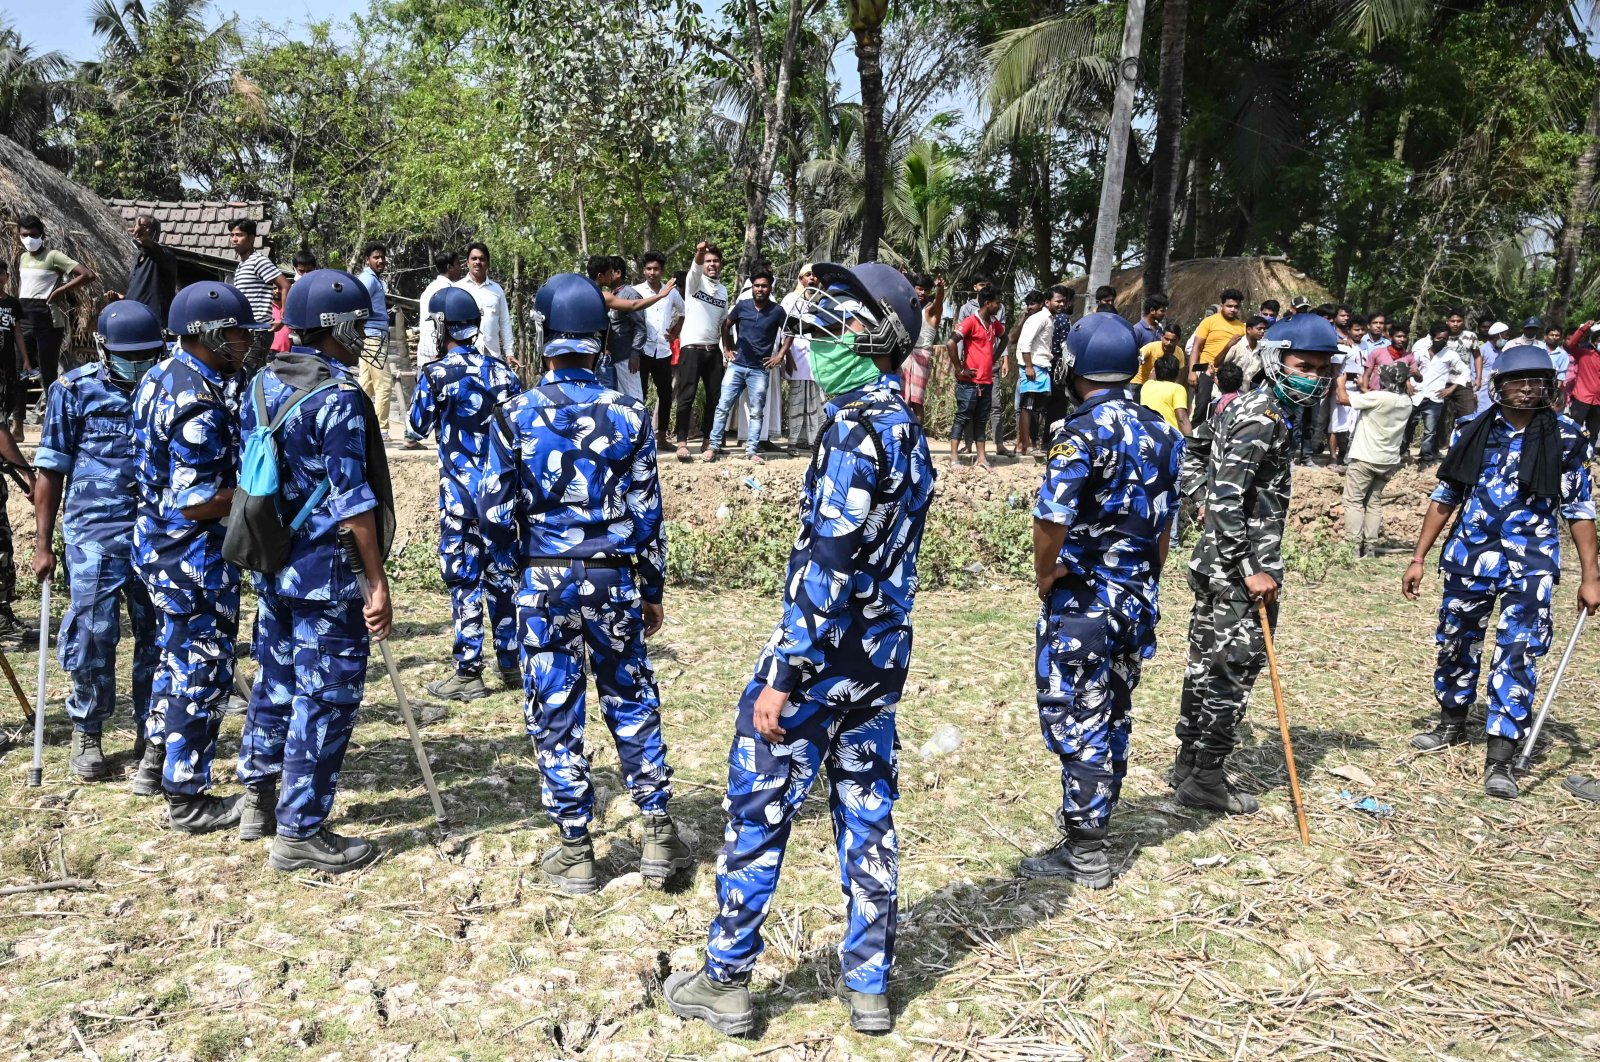 Rapid Action Force (RAF) stand guard between All India Trinamool Congress party supporters and Bharatiya Janata Party (BJP) supporters as West Bengal's Chief Minister Mamata Banerjee (not pictured) enters a polling station during the second phase of West Bengal's legislative elections in Nandigram, India, April 1, 2021. (AFP Photo)